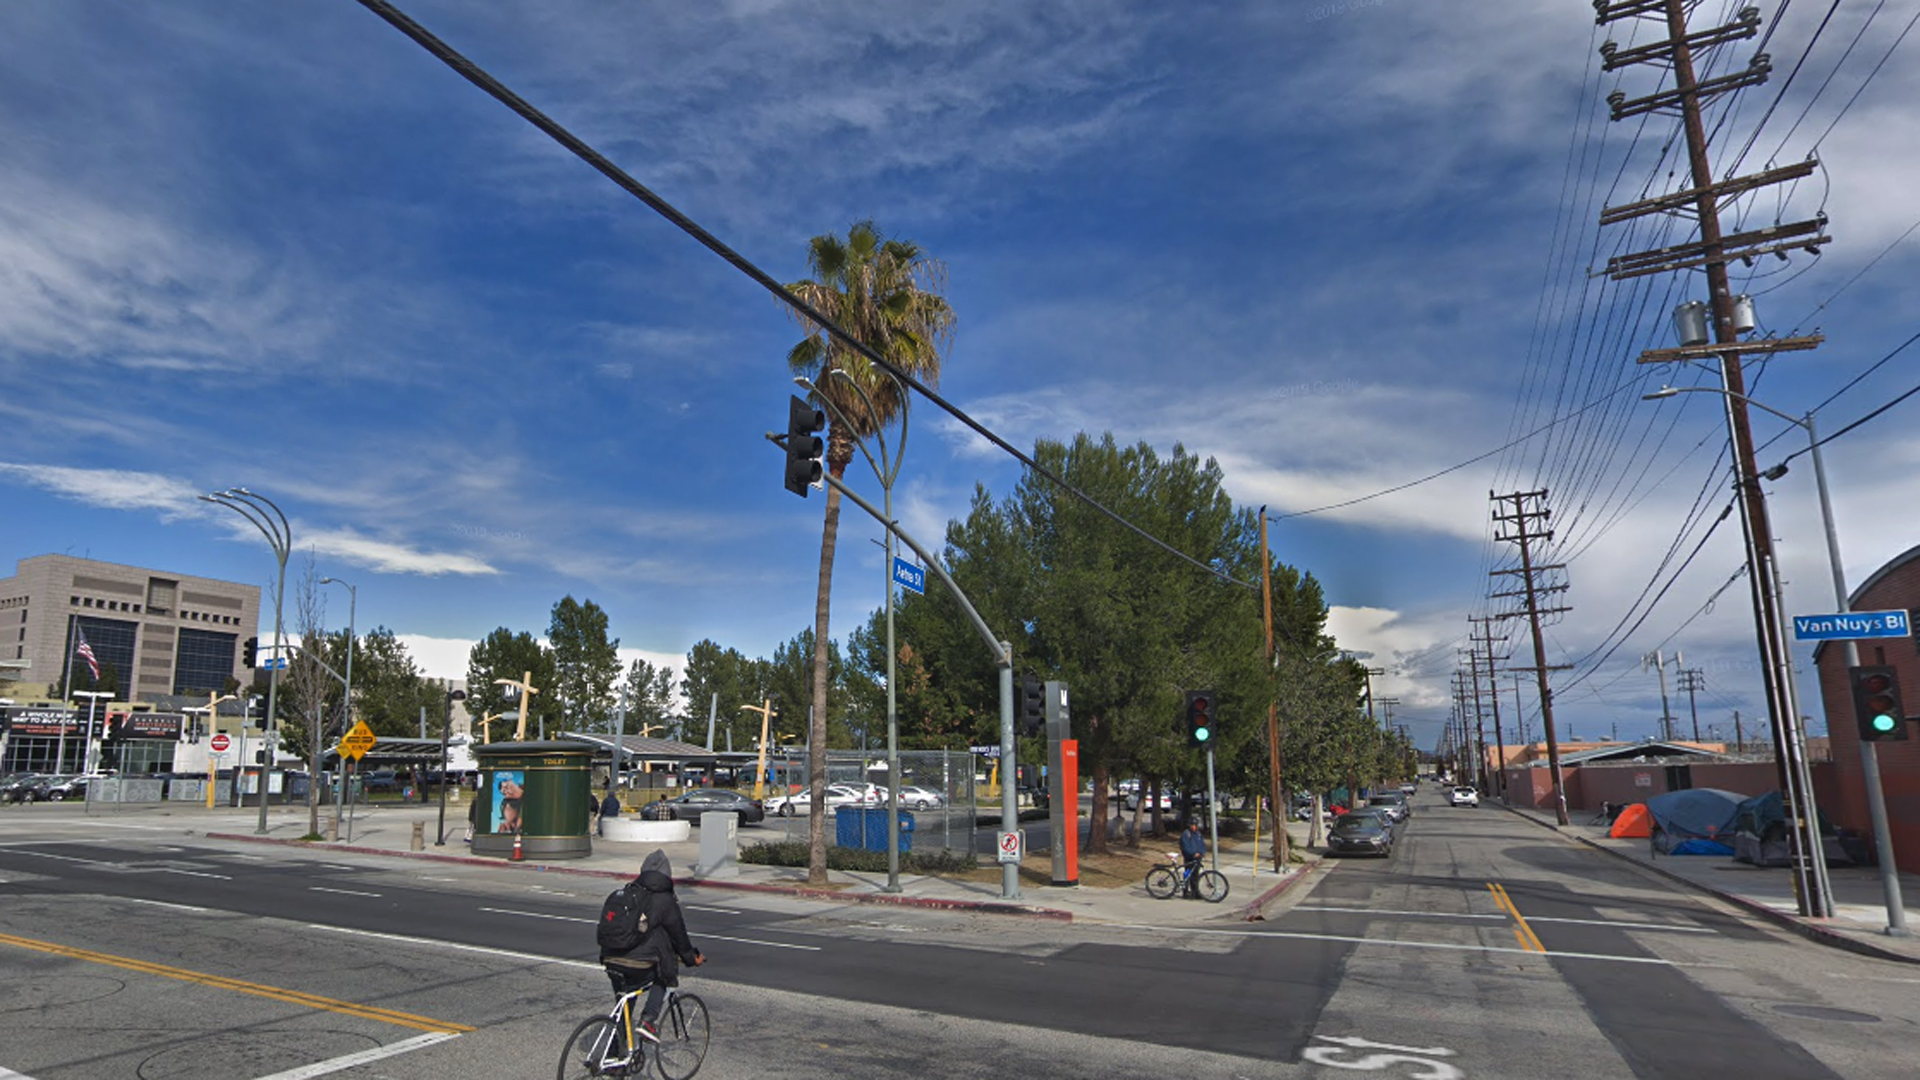 The intersection of Aetna Street and Van Nuys Boulevard in Van Nuys is seen in a Google Maps Street View image from February 2019.